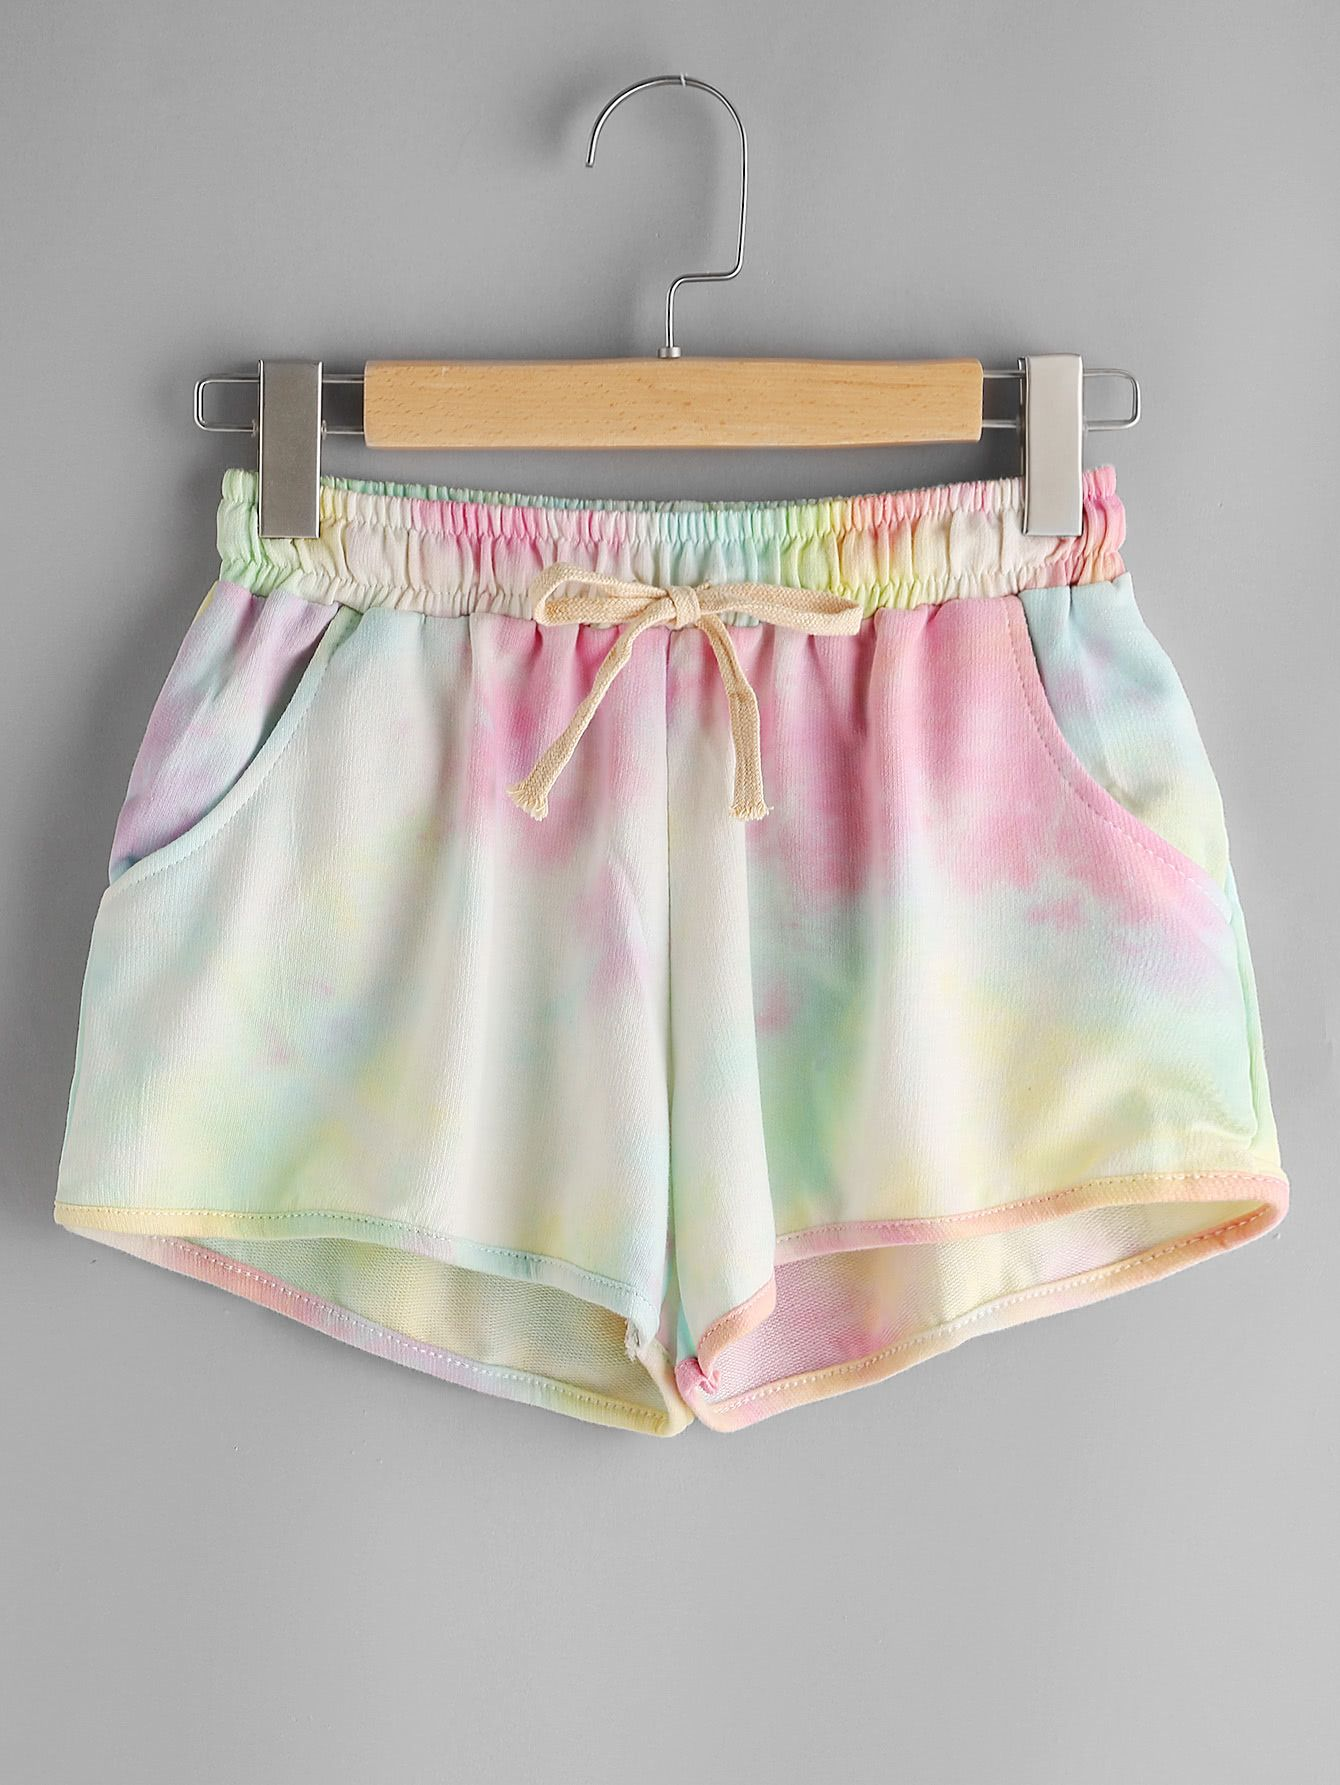 Water Color Elastic Drawstring Waist Shorts Pakaian Lucu Gaya